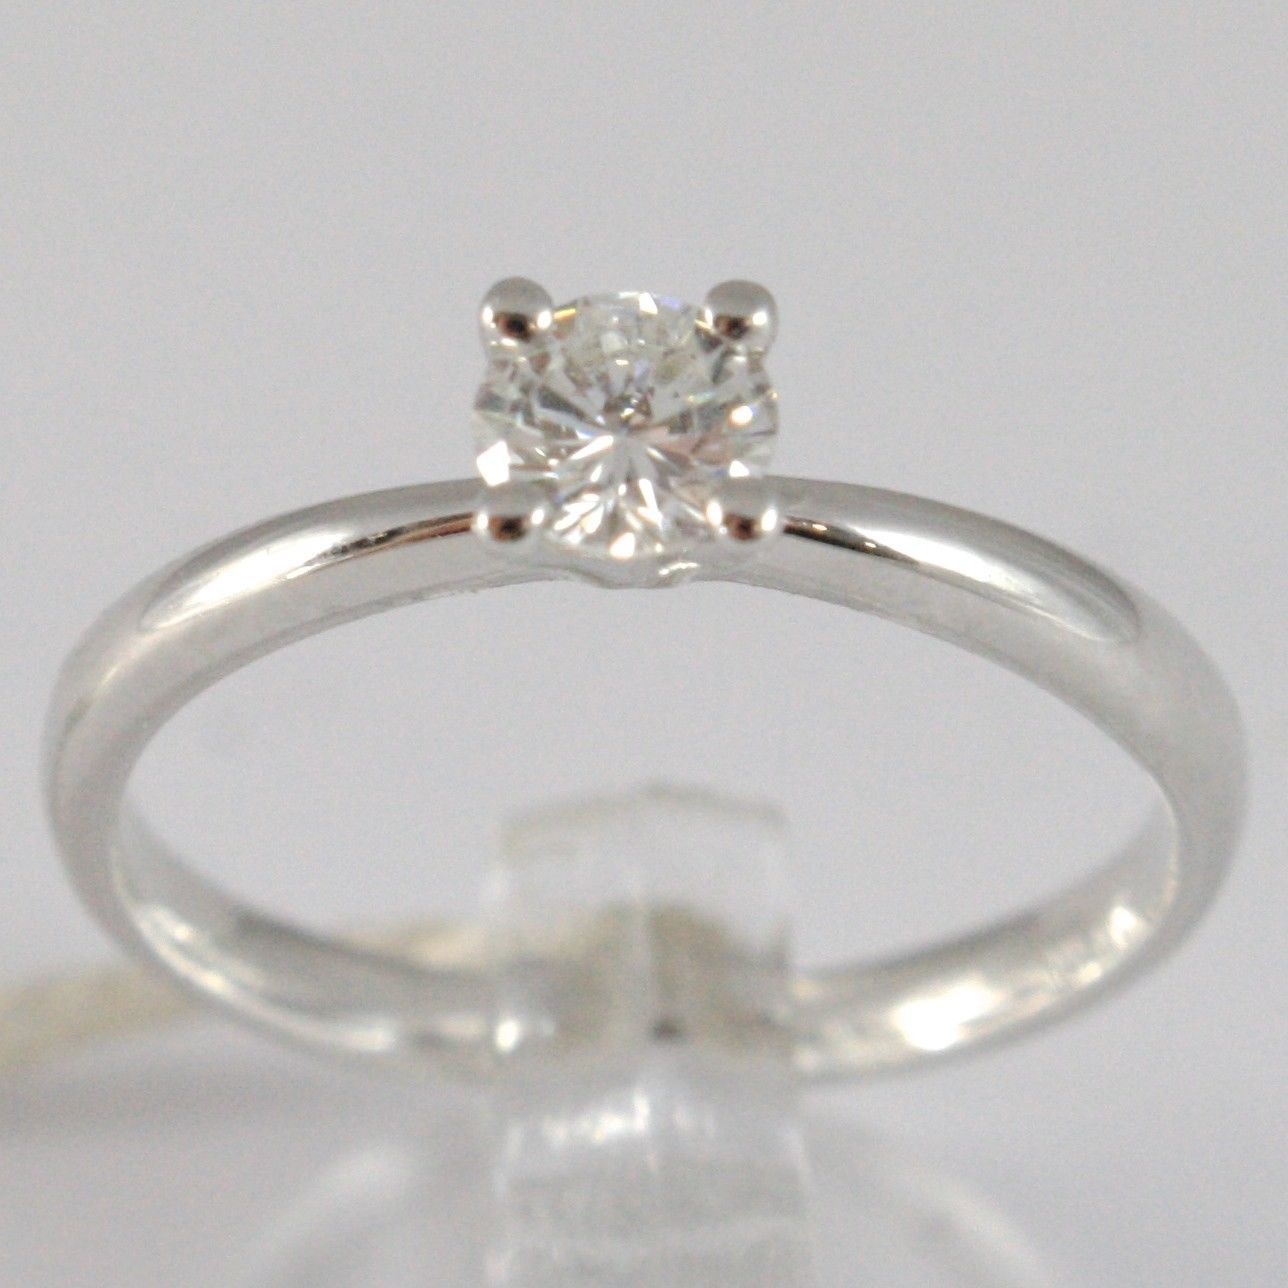 WHITE GOLD RING 750 18K, SOLITAIRE, STEM ROUNDED, DIAMOND CARAT 0.32